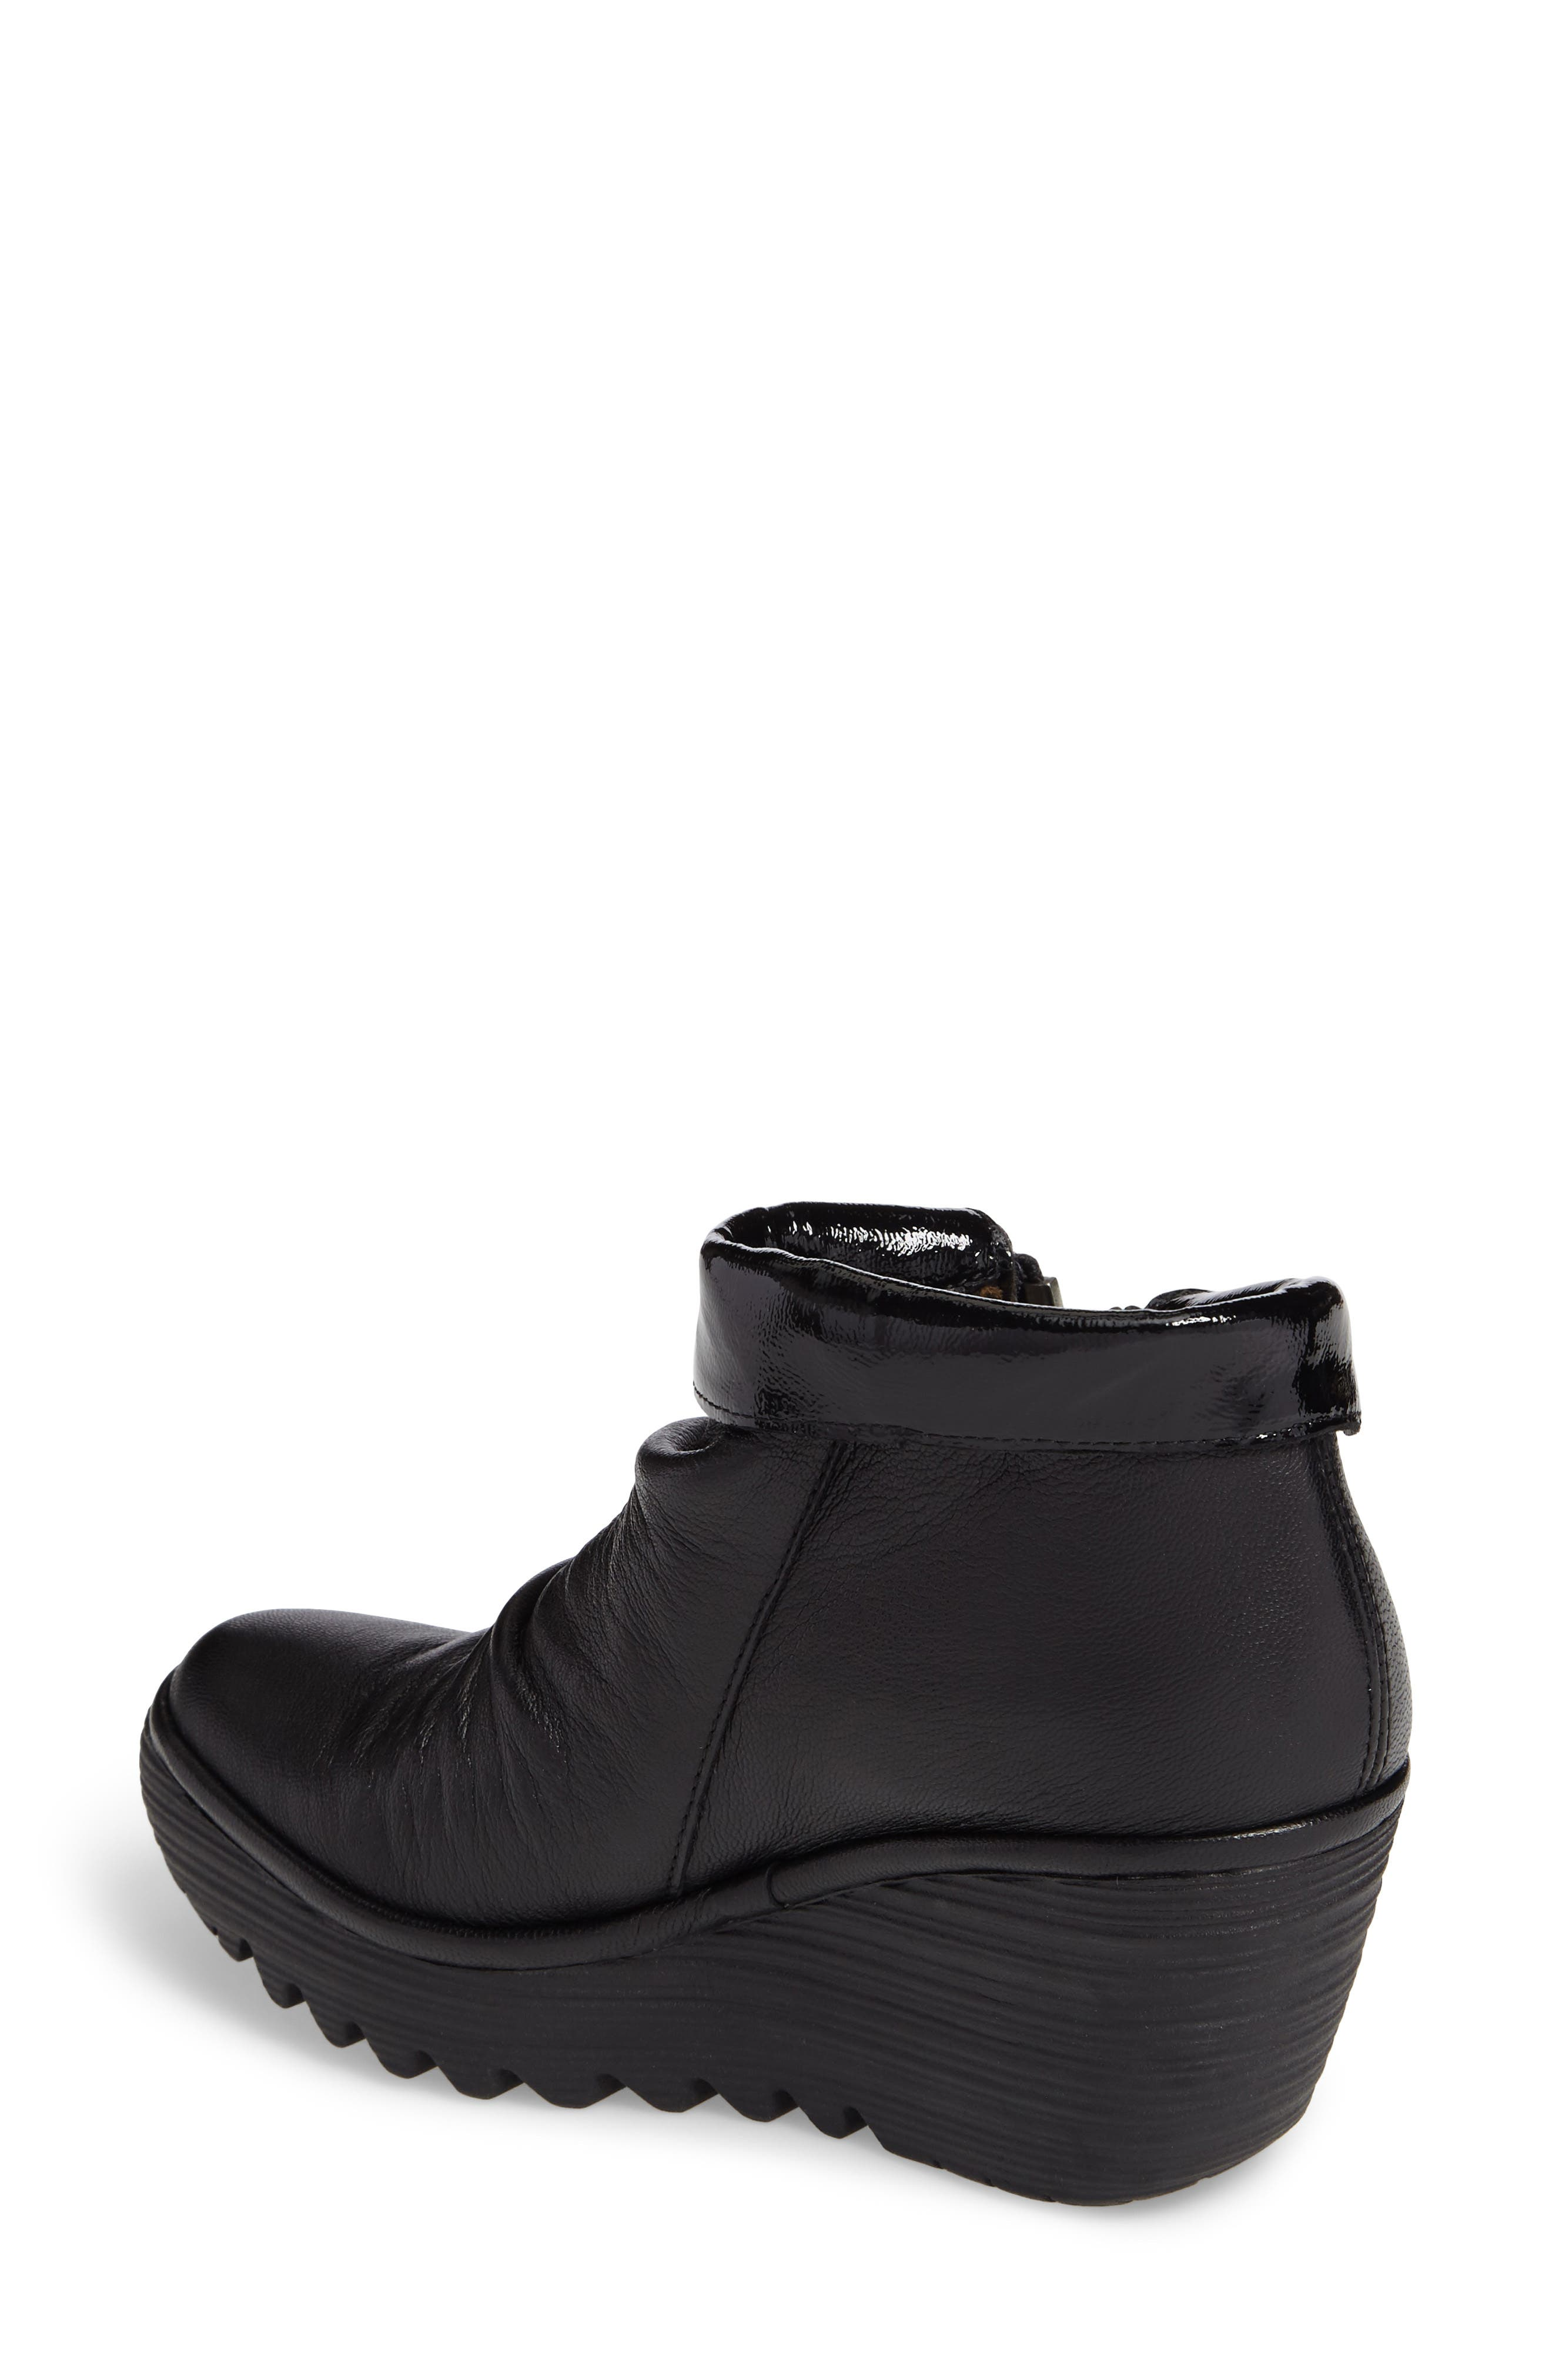 Yoxi Wedge Bootie,                             Alternate thumbnail 2, color,                             Black Leather